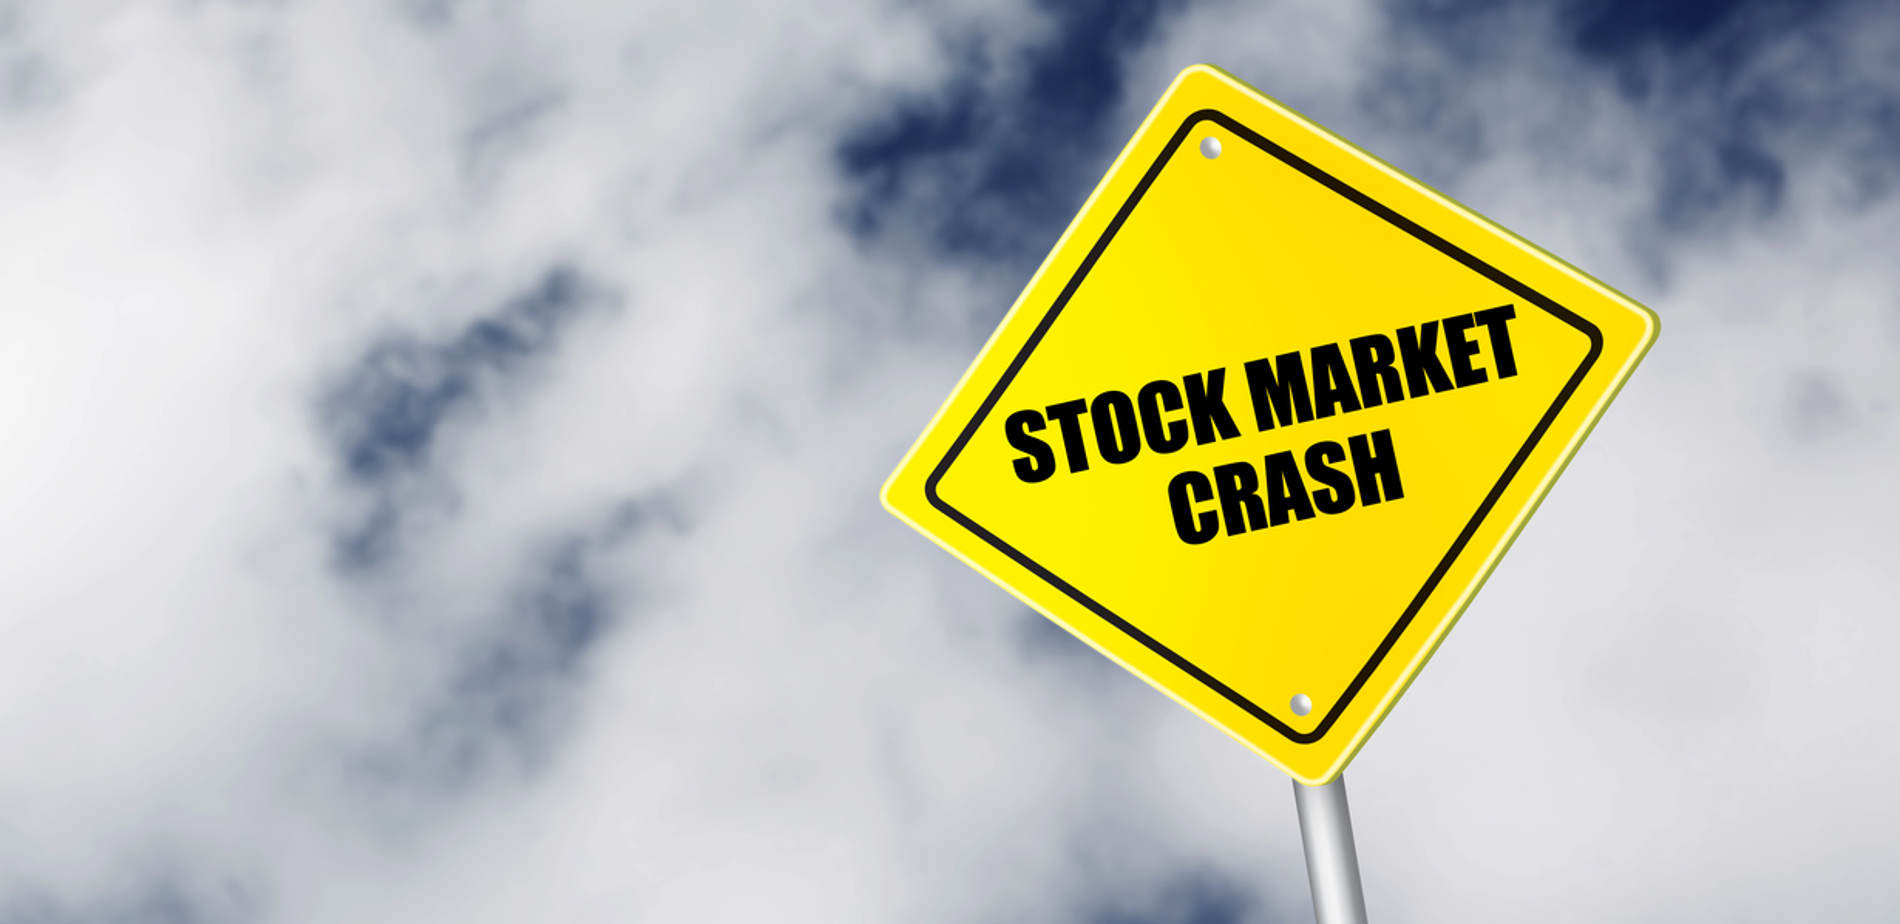 Stock Market Crash in 2017? Here's Why Massive Losses Could Be Ahead